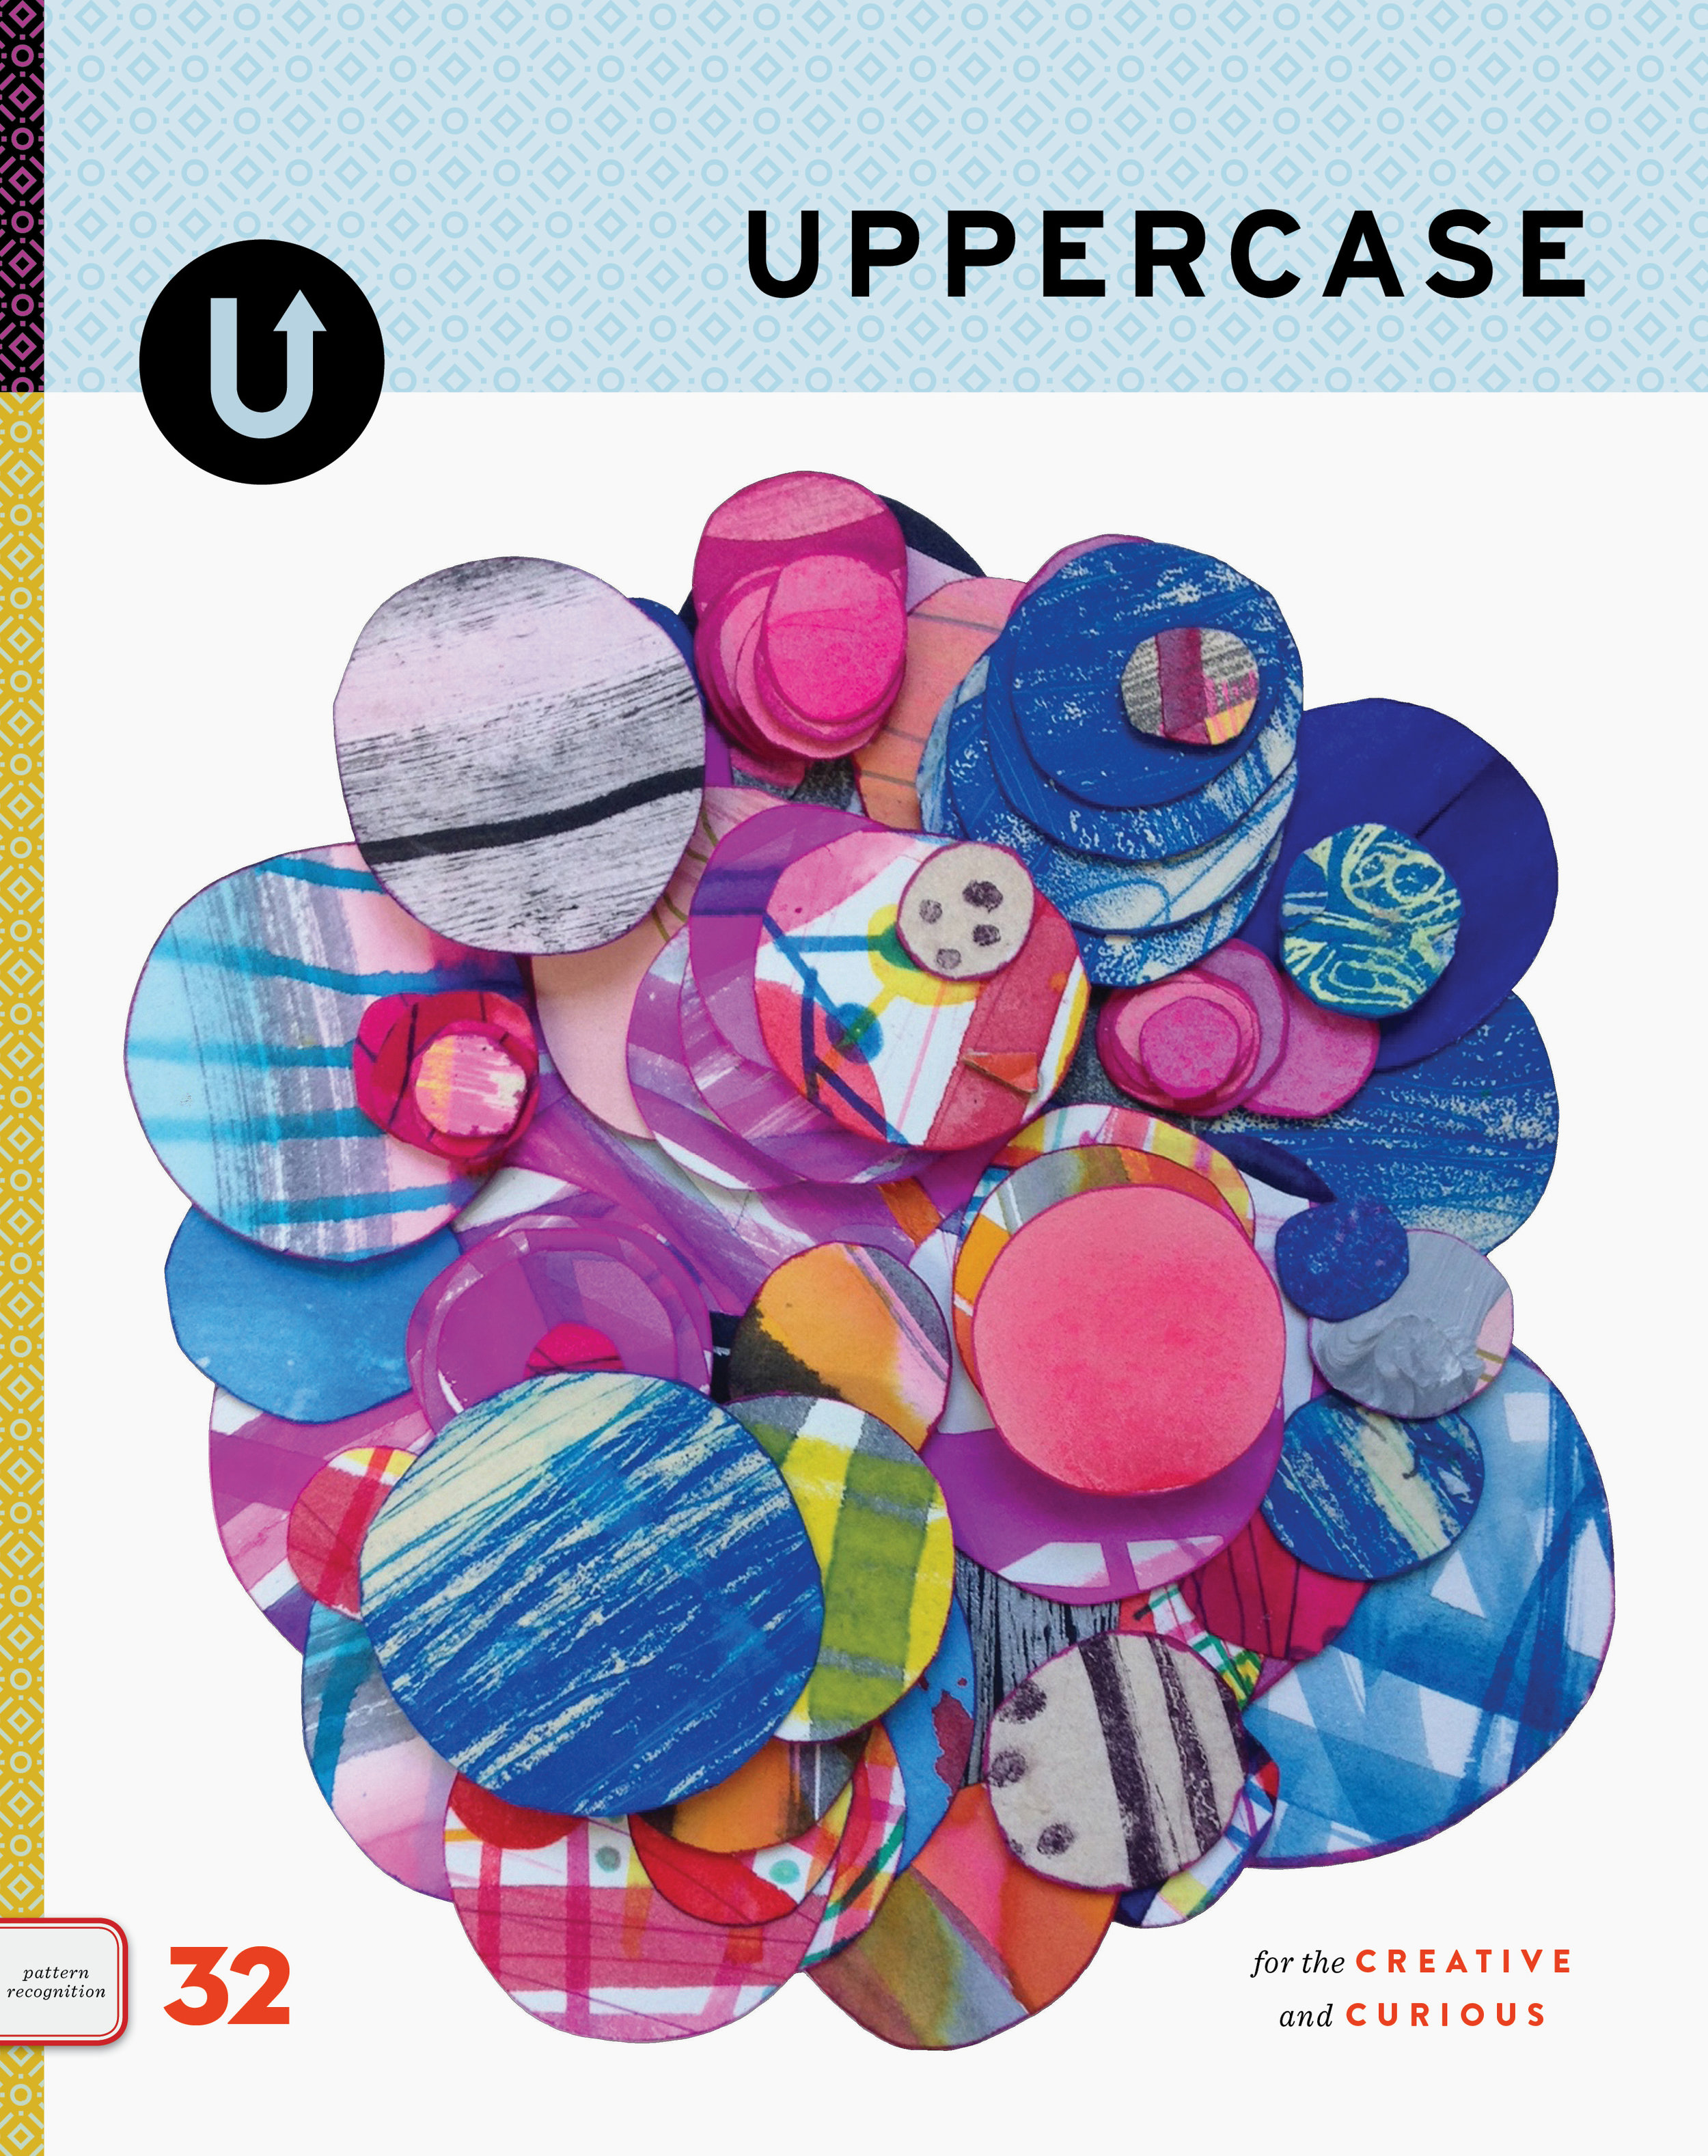 UPPERCASE Magazine, Issue 32, contains the Surface Pattern Design Guide.